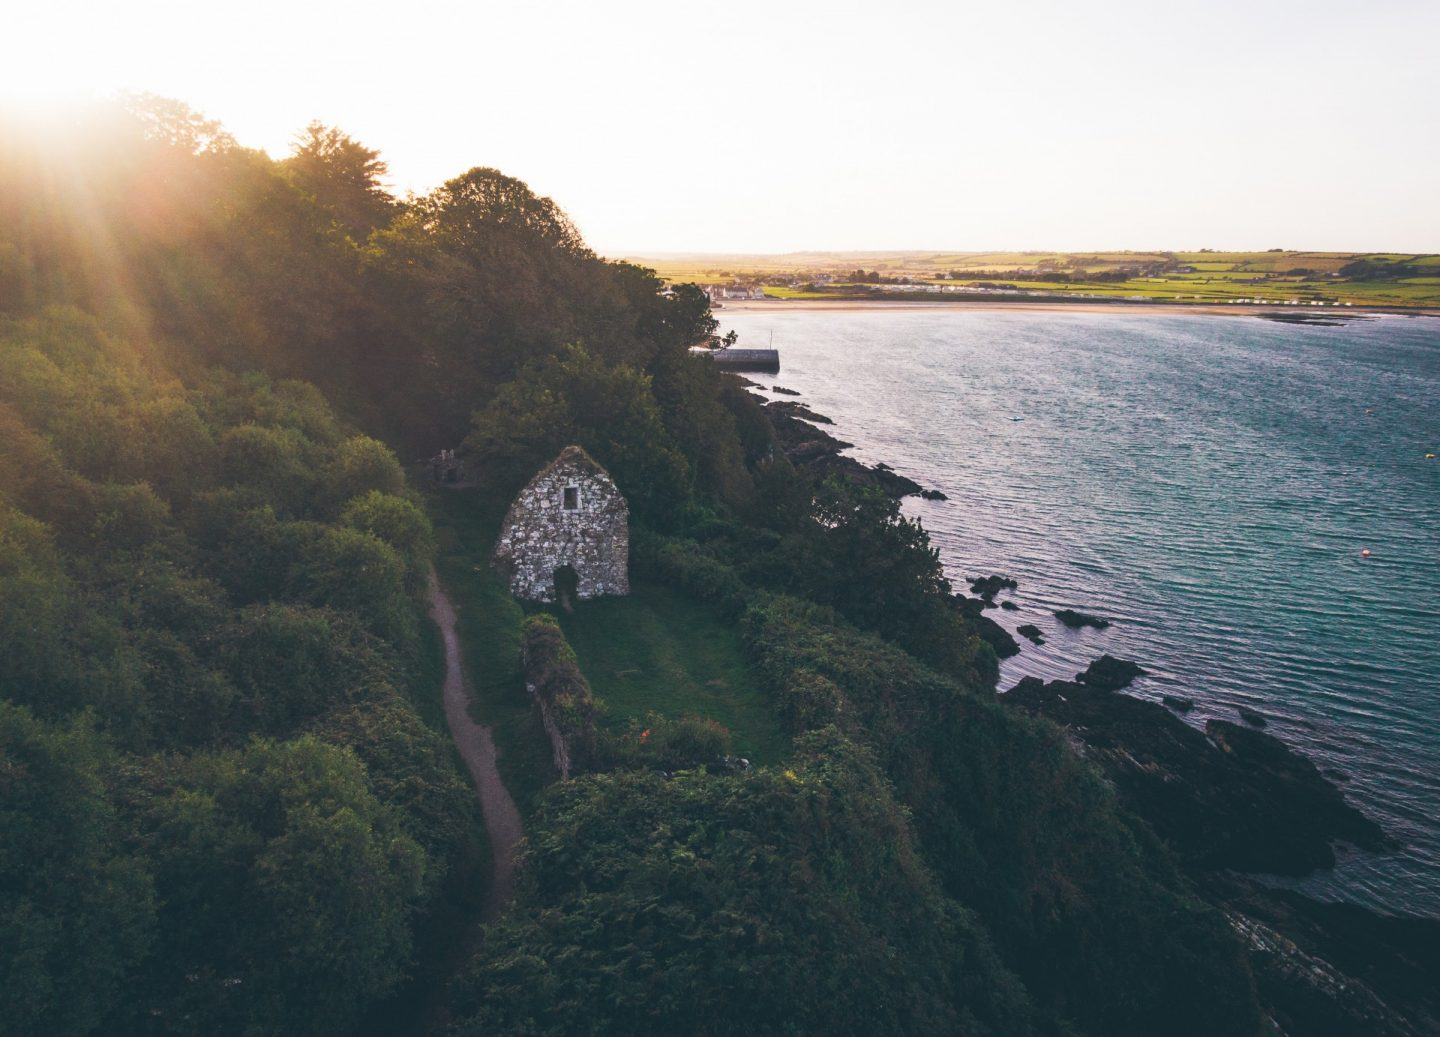 Stone ruins by the water in Ardmore, Waterford in Ireland